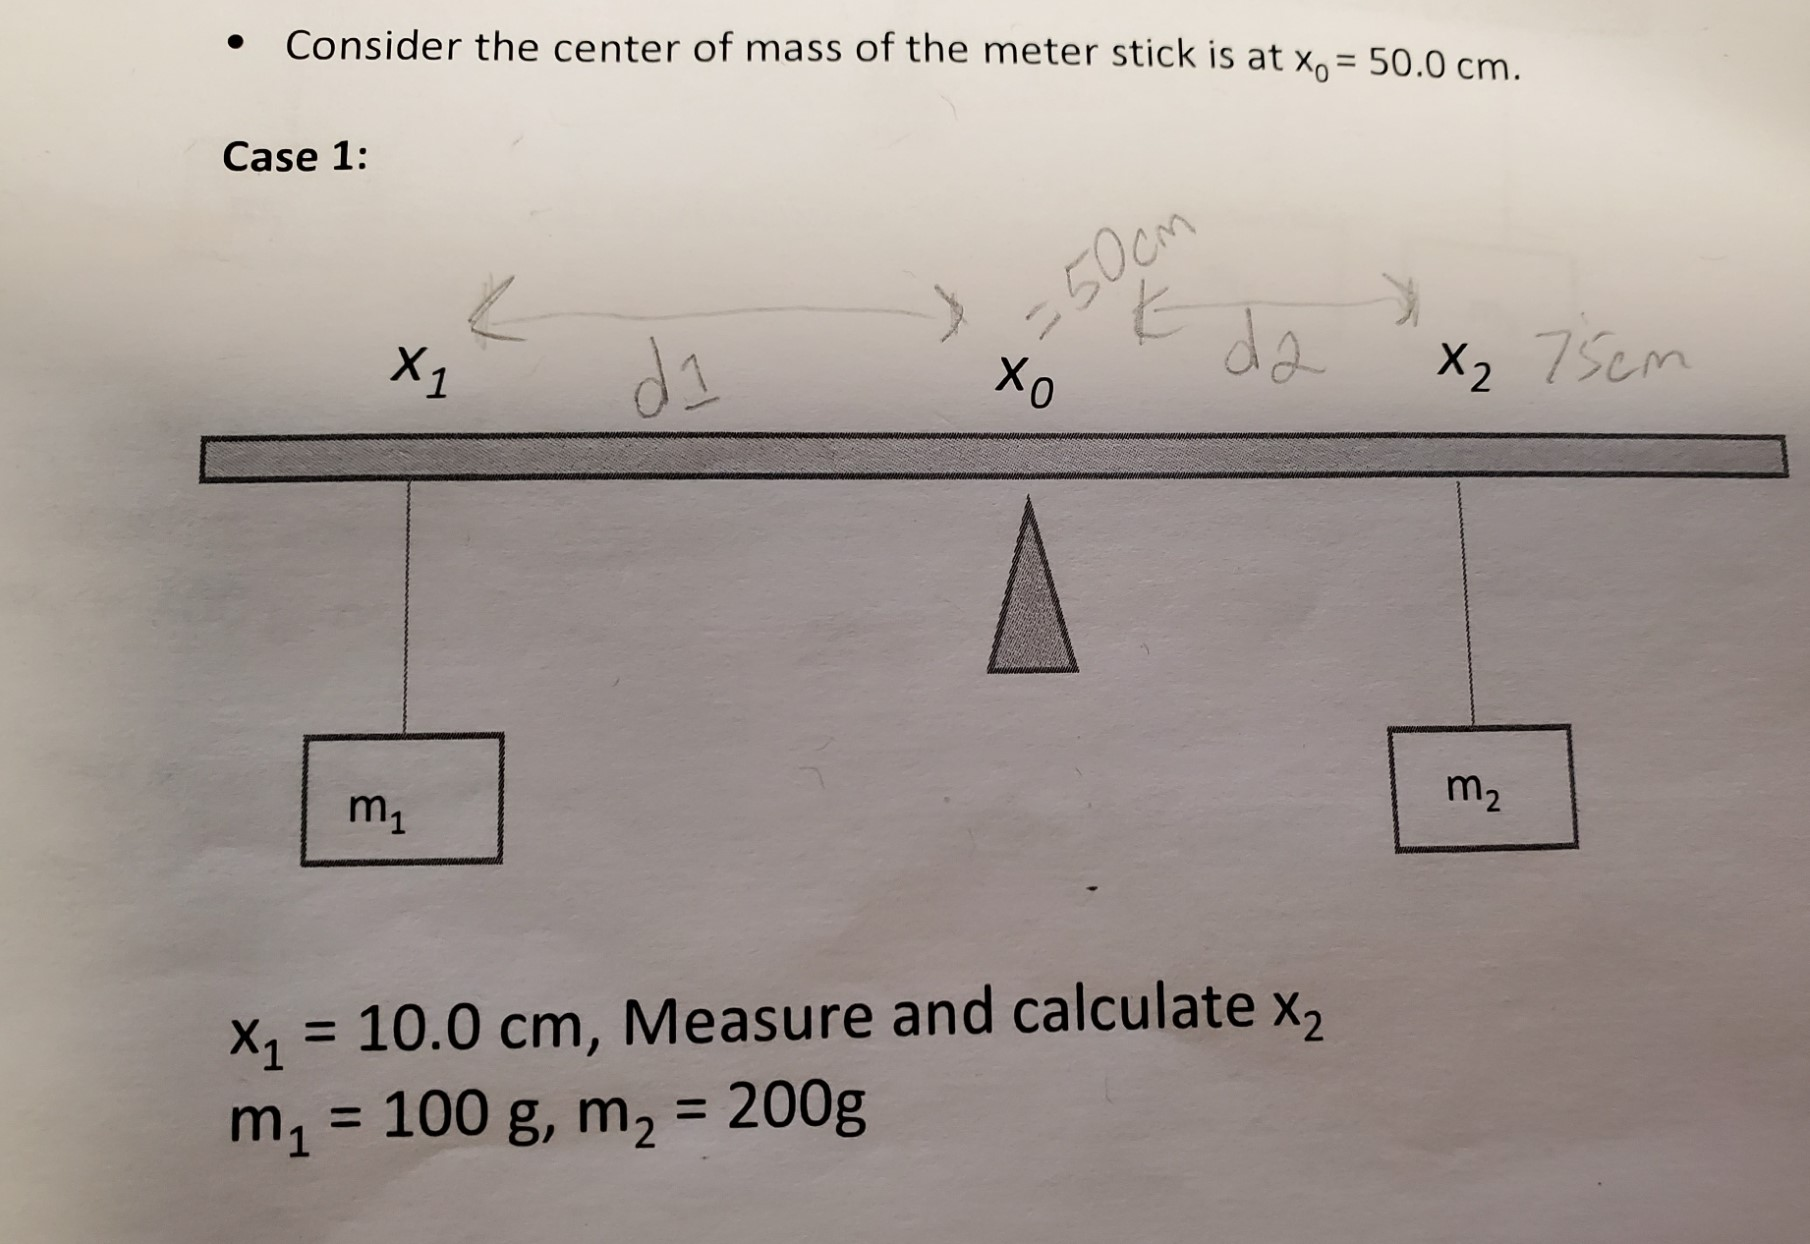 Consider the center of mass of the meter stick is at x= 50.0 cm. Case 1: -50cm da X1 di X2 75cm m1 m2 10.0 cm, Measure and calculate x, 100 g, m2 = 200g m X1